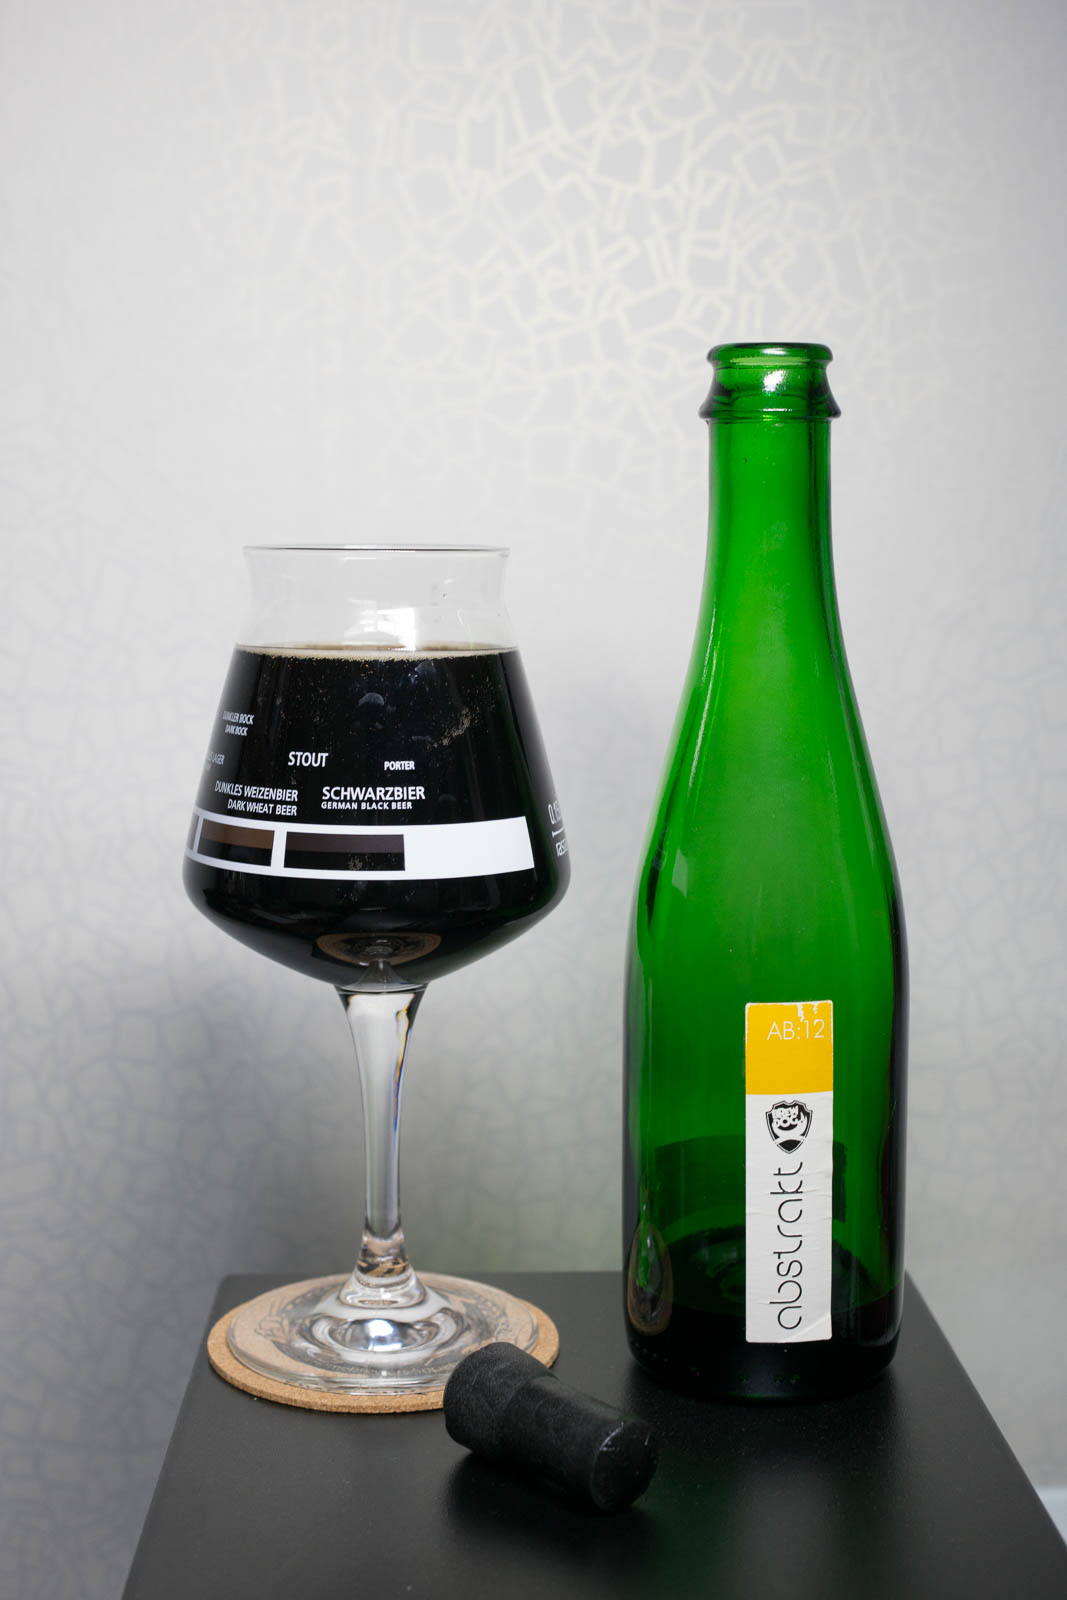 BrewDog Abstrakt AB:12